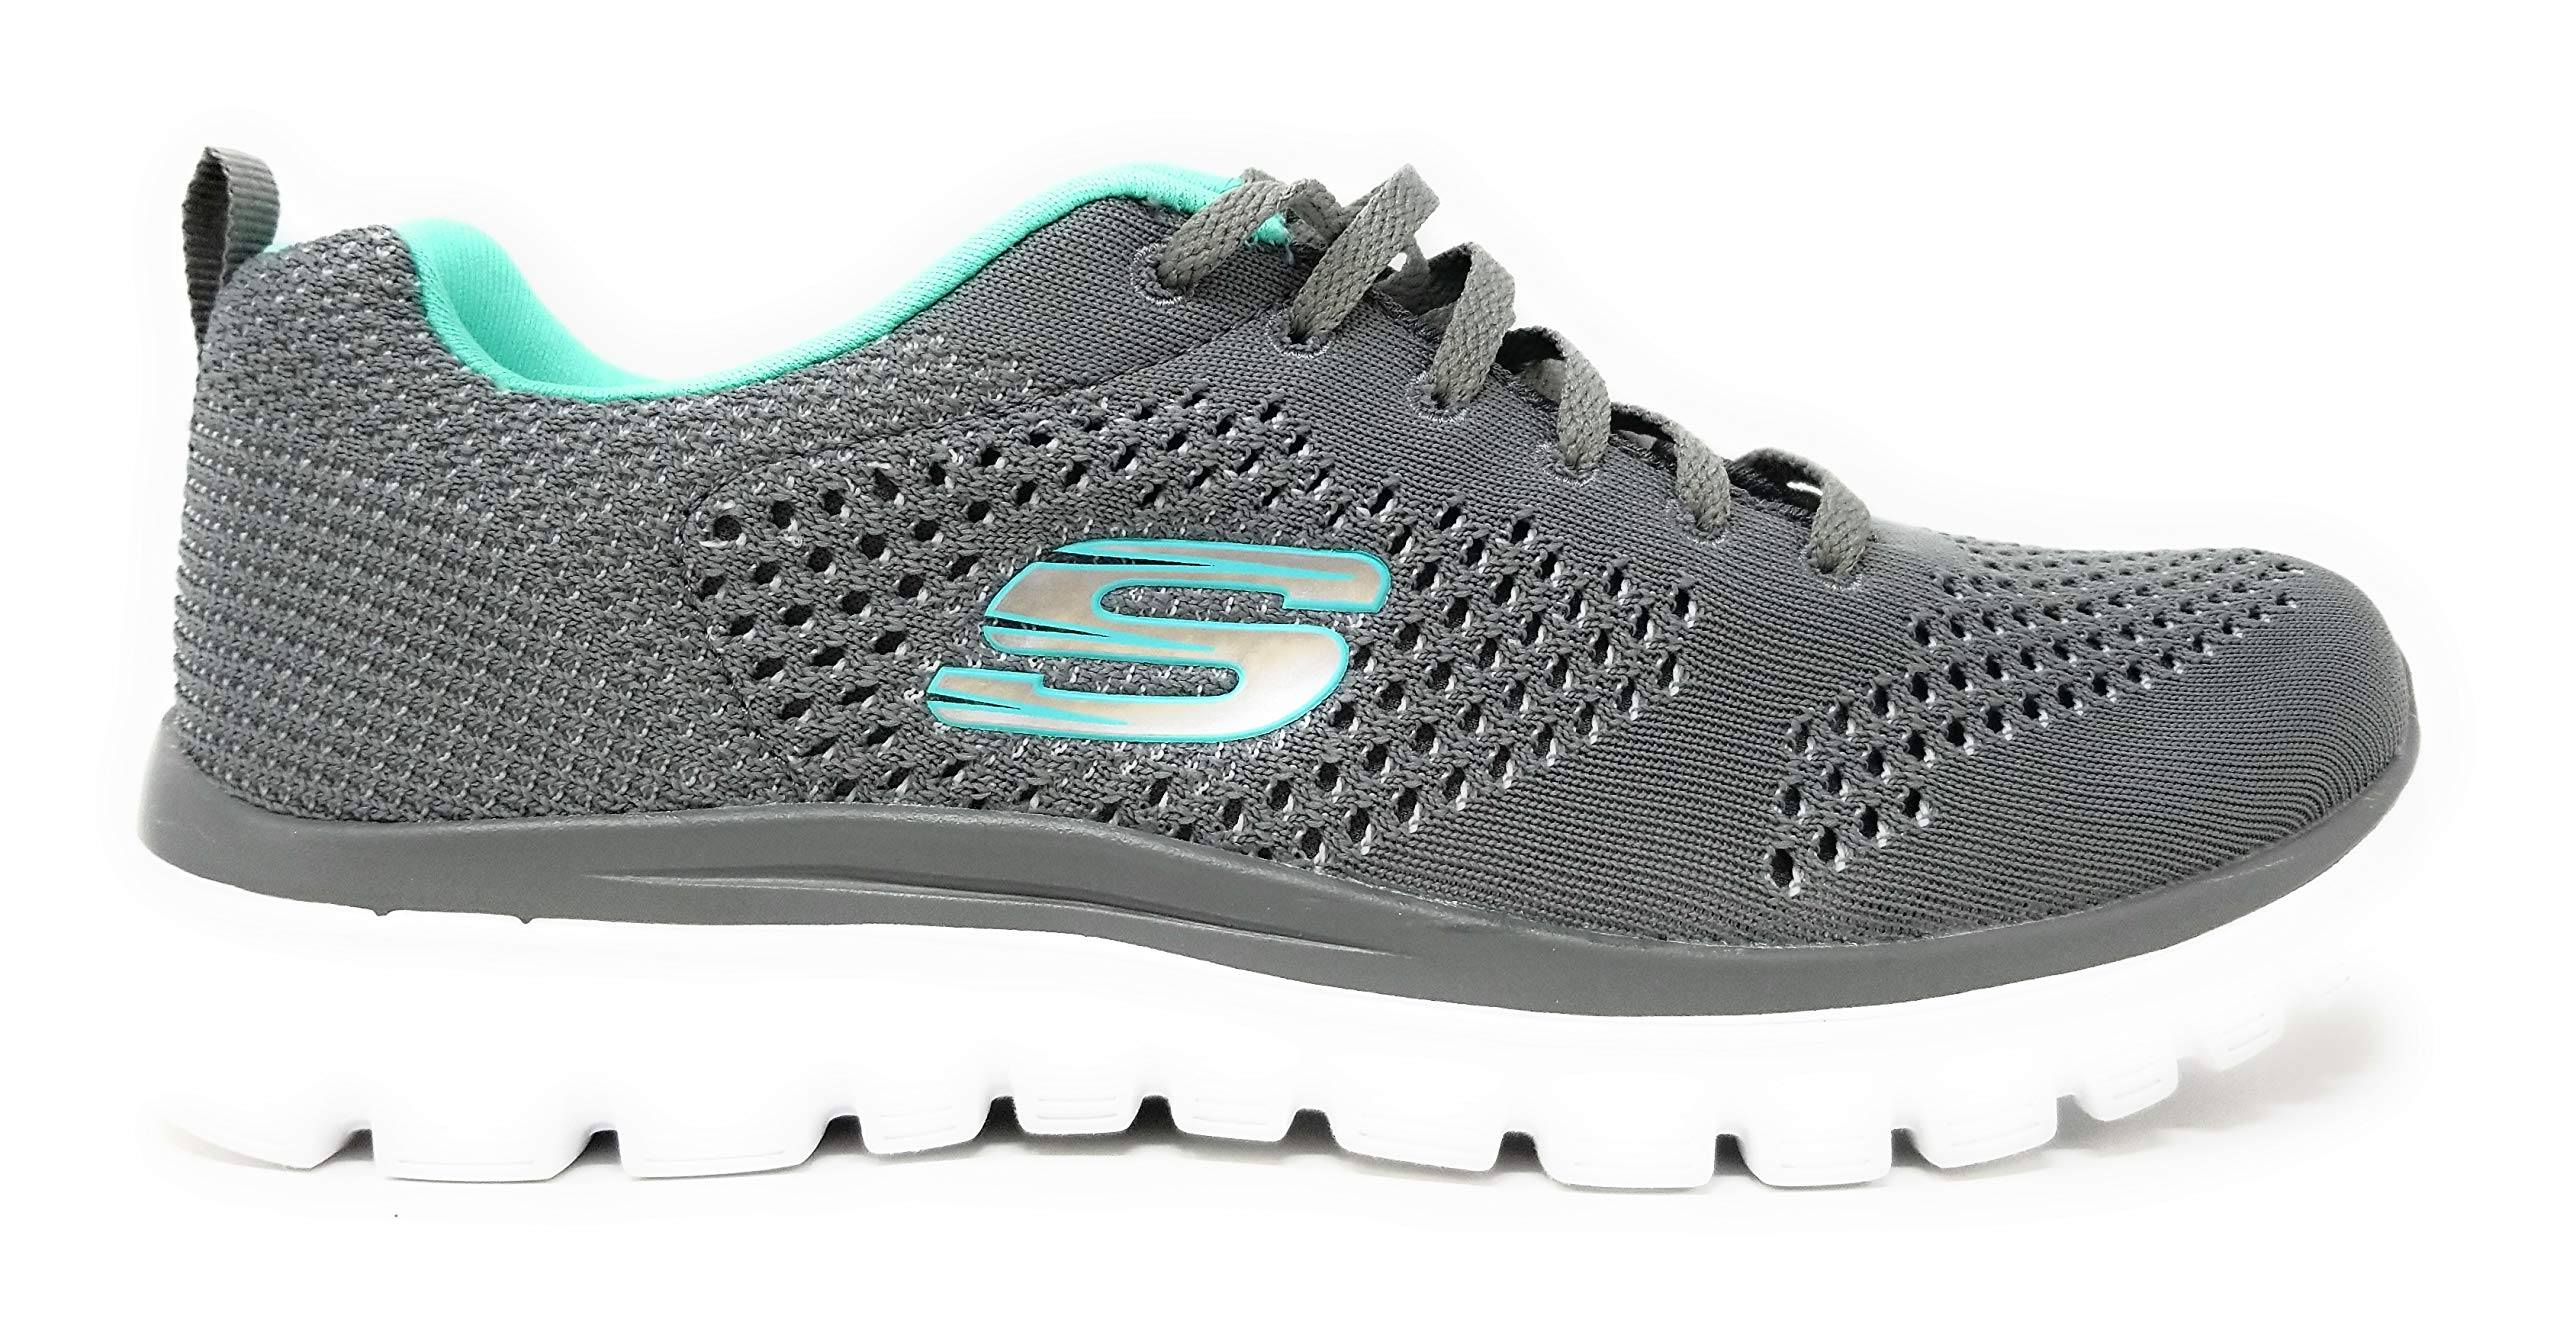 Skechers Graceful 2.0 Magnificent Journey Walking Shoes, 6.5 B US, (Gray/Aqua/So Noticable) by Skechers